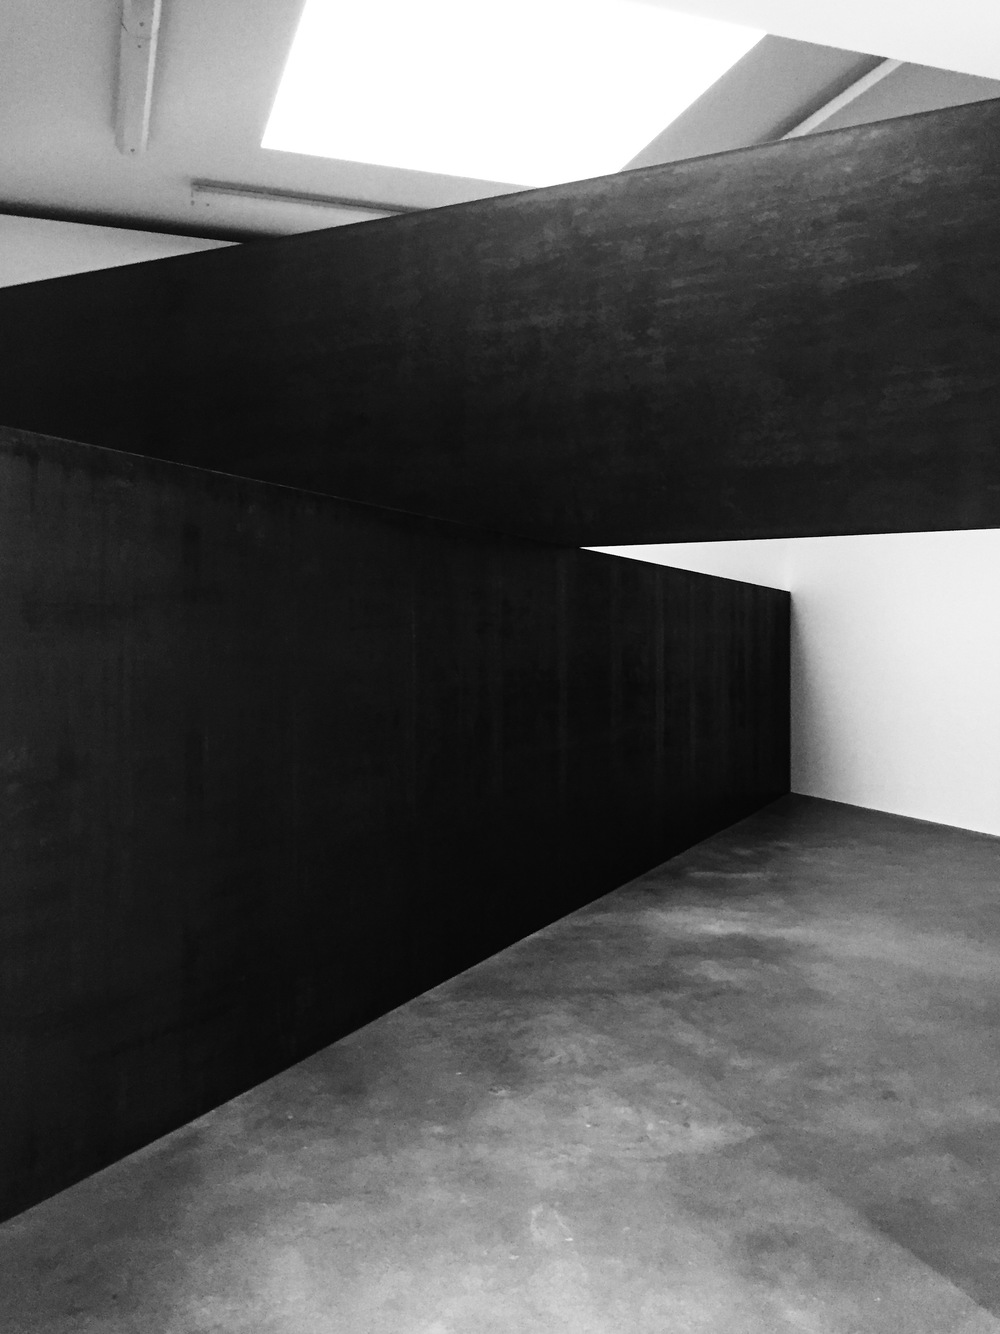 richard serra london cross photography by paul joyce | S/TUDIO